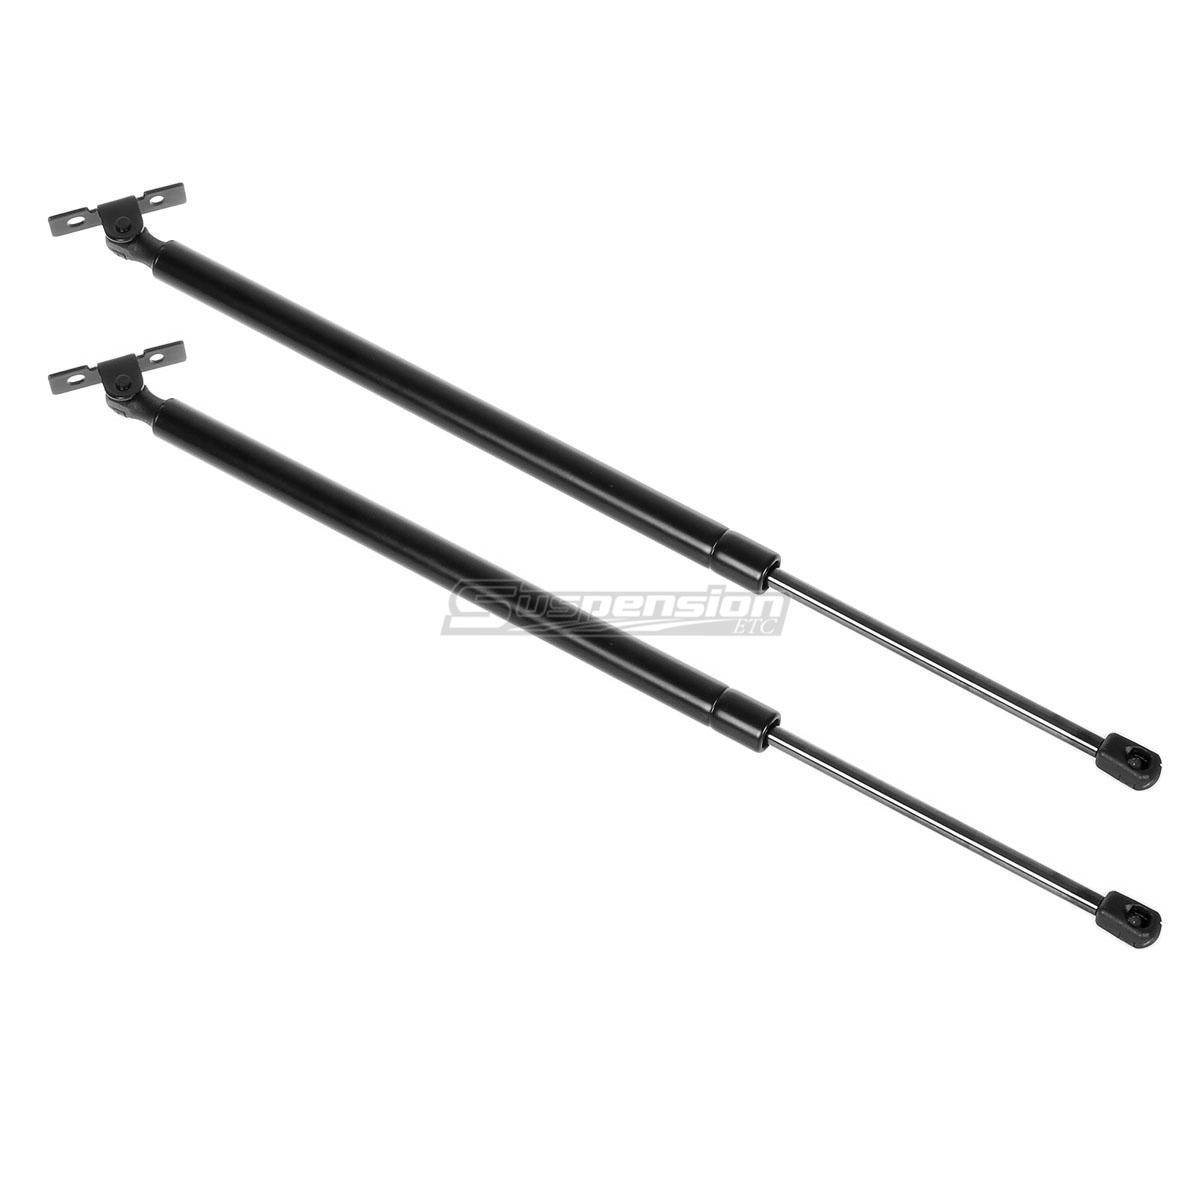 4291 Liftgate Lift Struts Supports Gas Cylinder Pair Kit